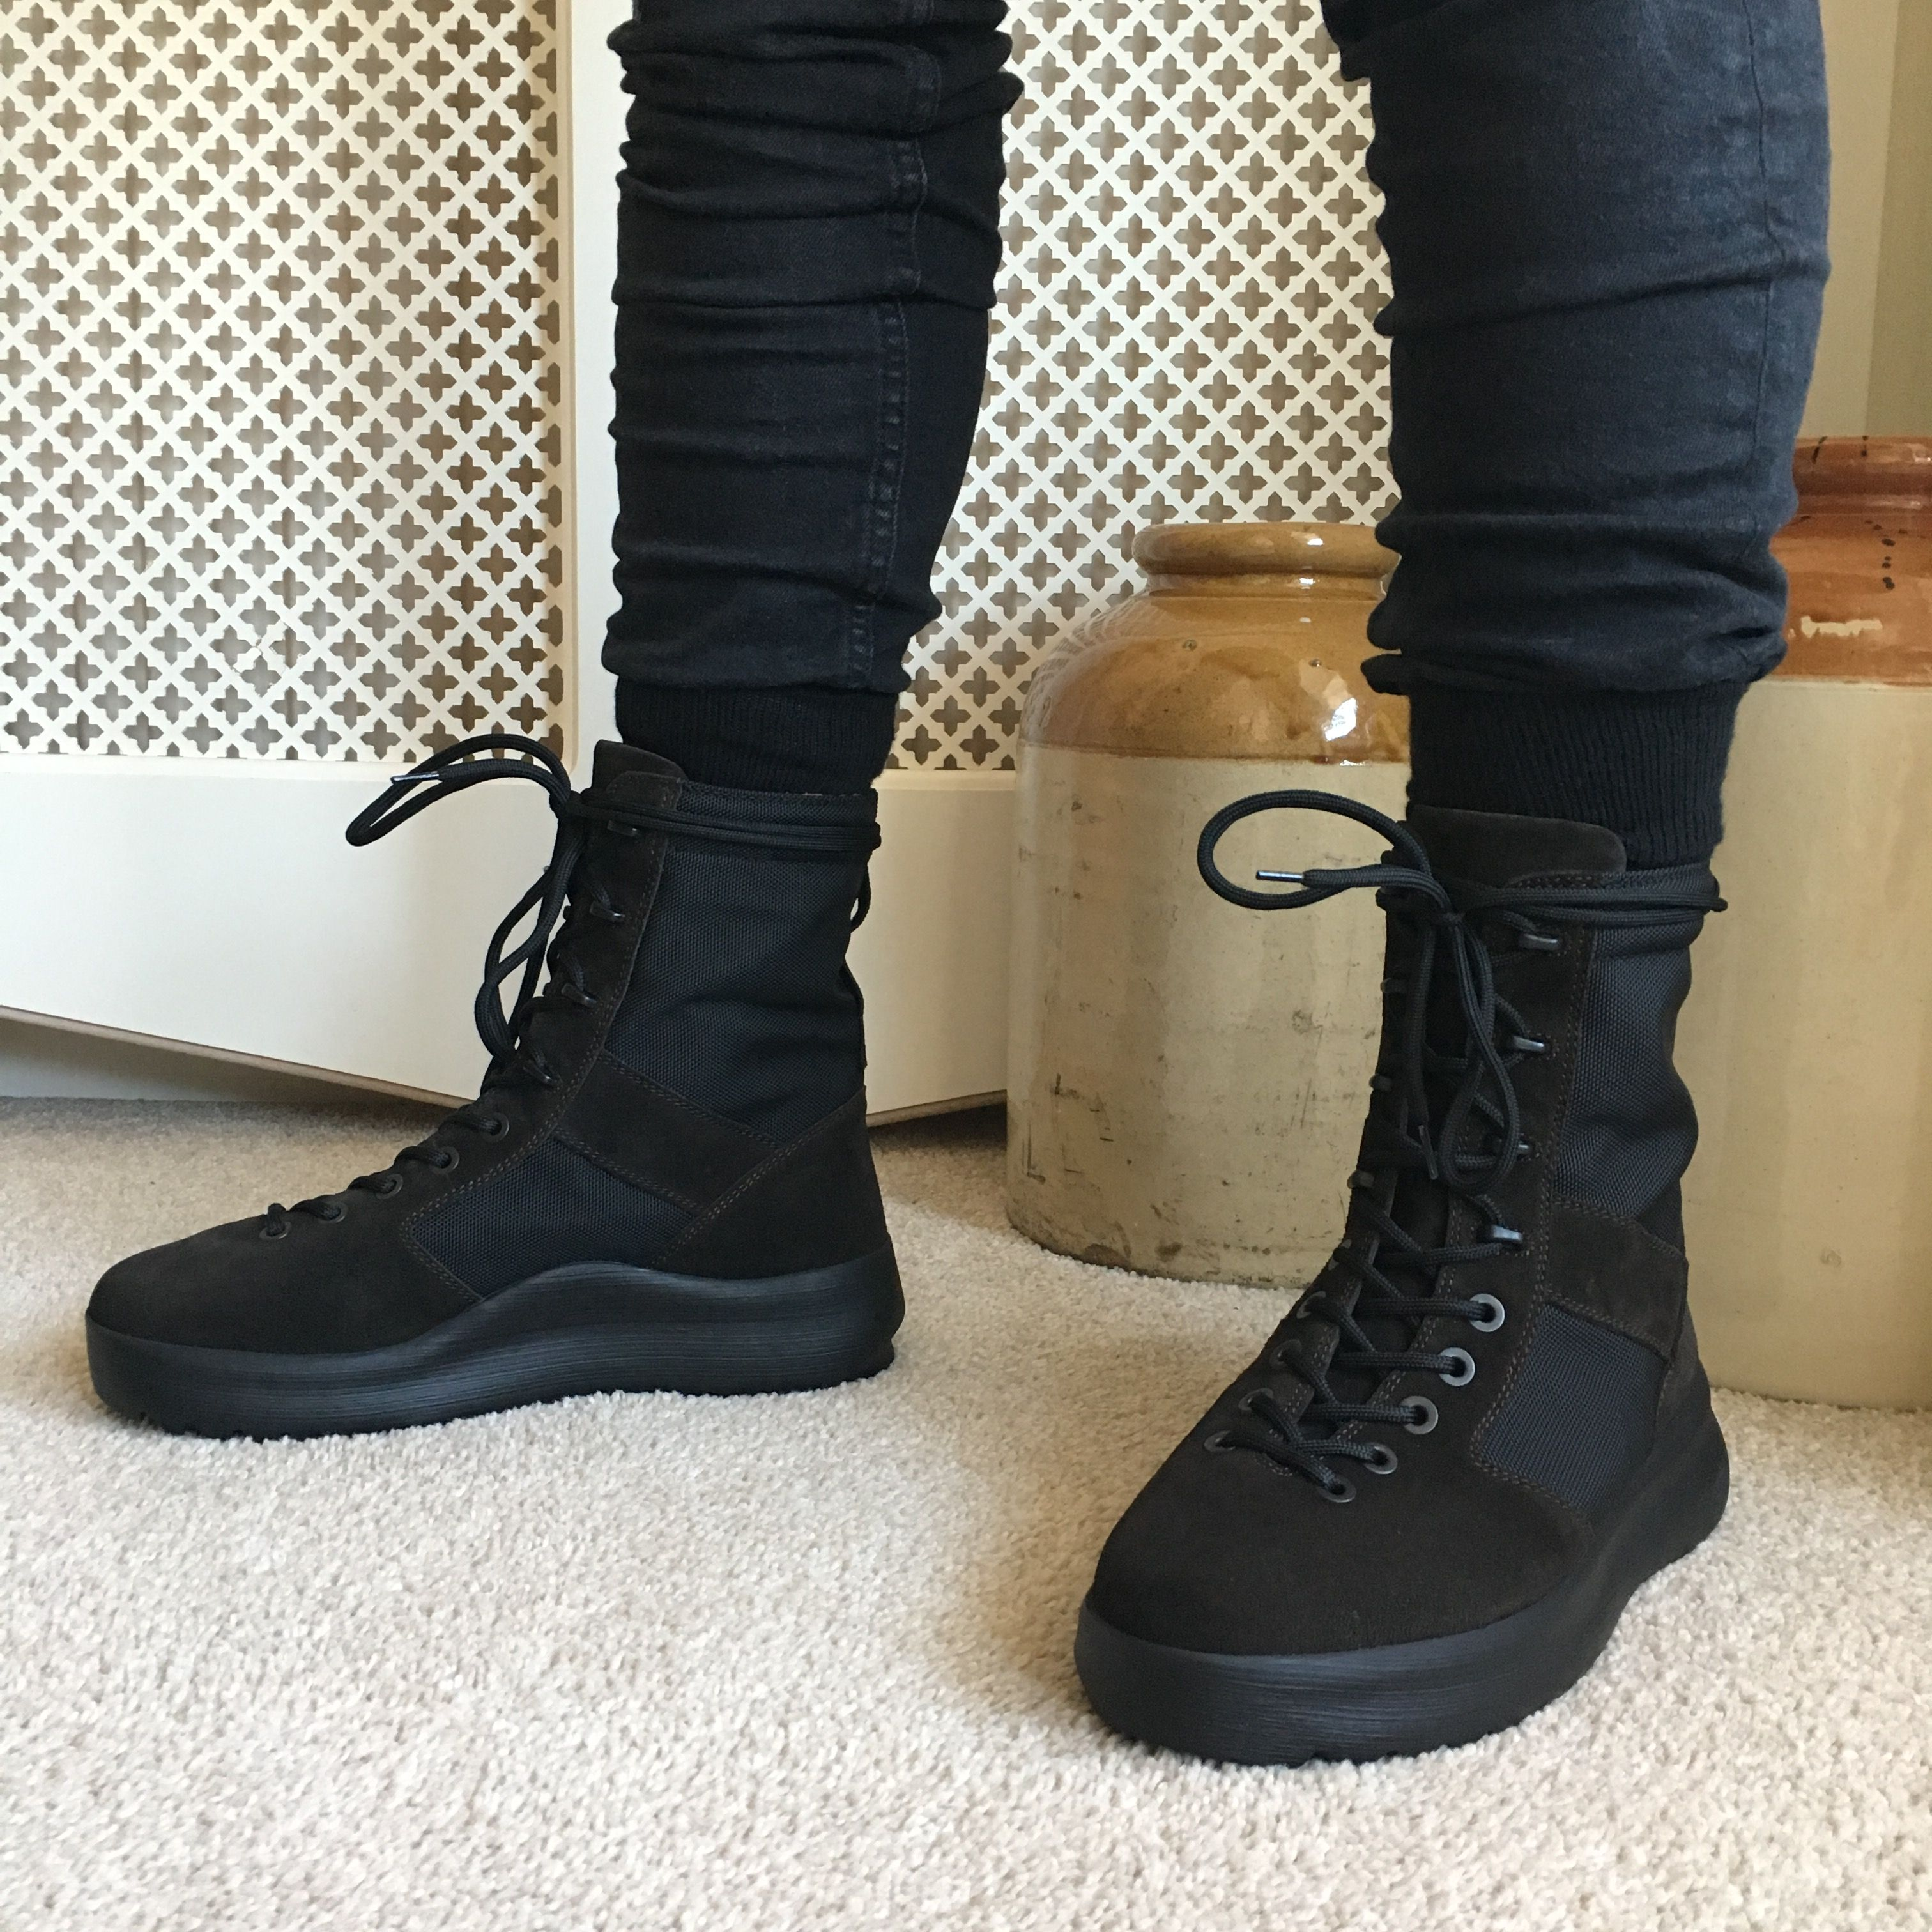 a78f8c384029c Yeezy Season 3 Military Boots - OnyxShade